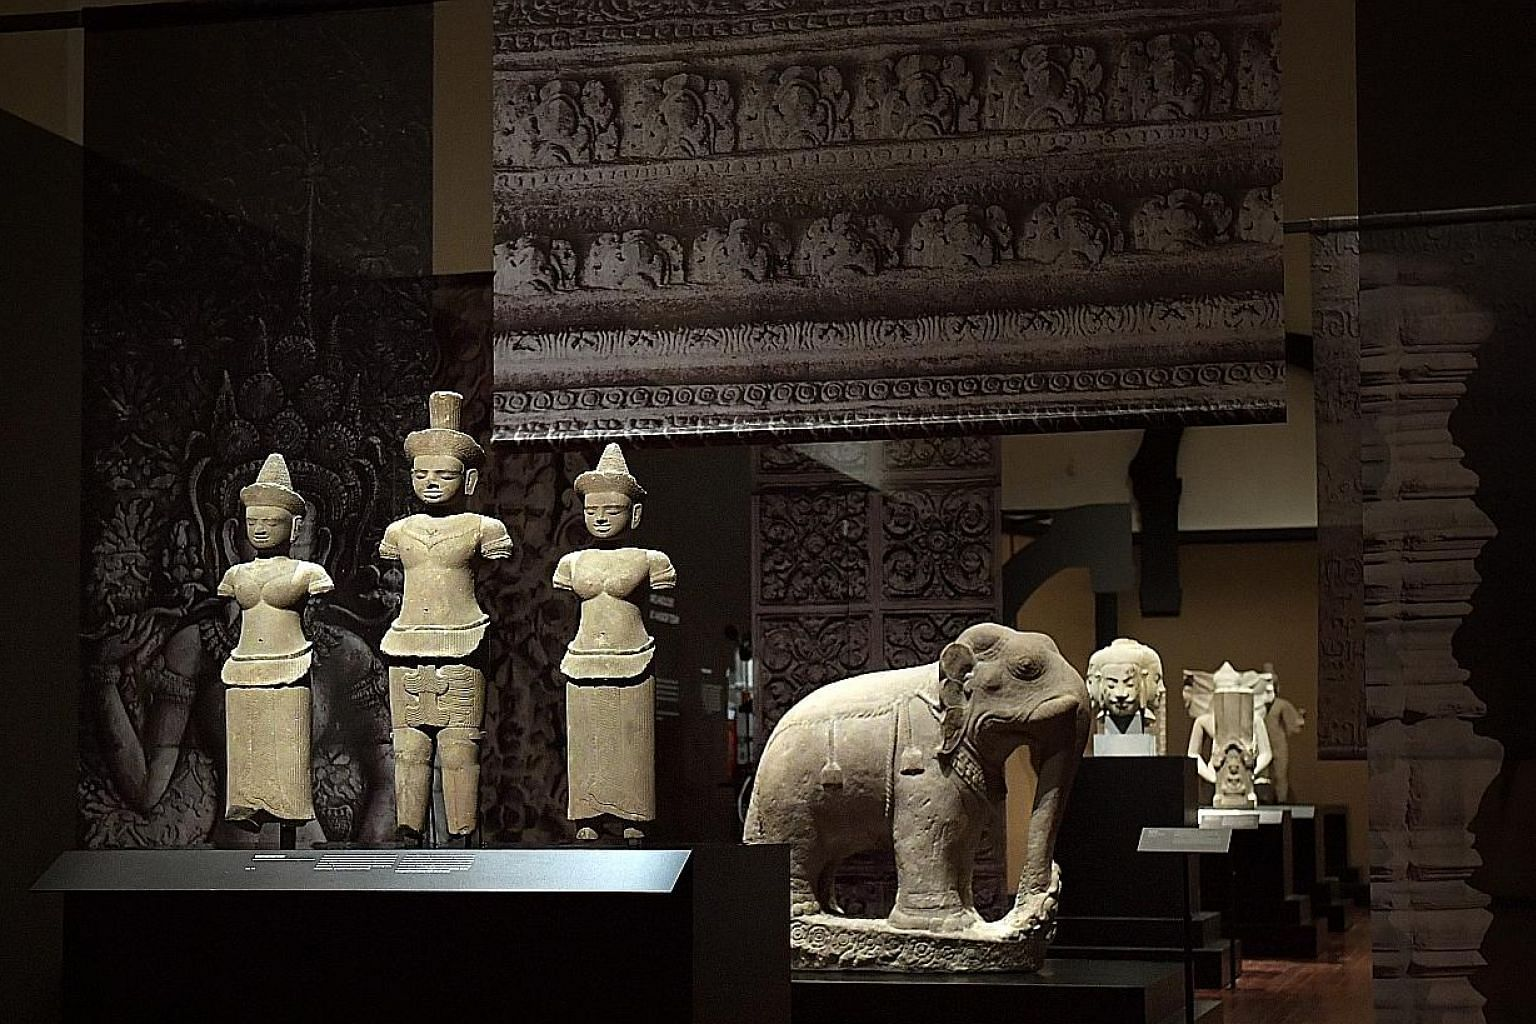 Many of the rubbings and plaster casts on display in the exhibition at the Asian Civilisations Museum are accurate reproductions of artworks that are now ruined.